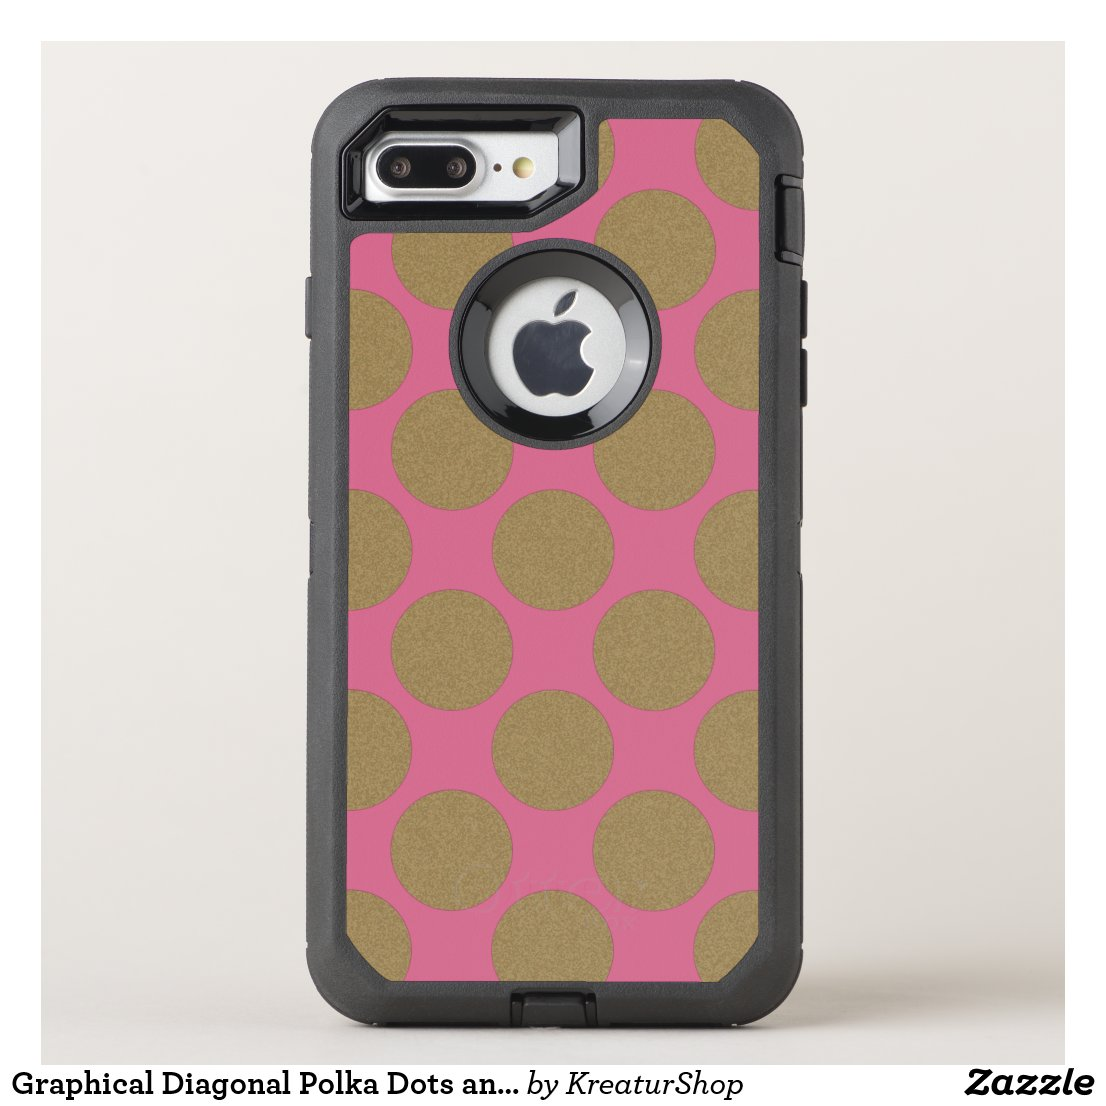 Graphical Diagonal Polka Dots any Color on Pink